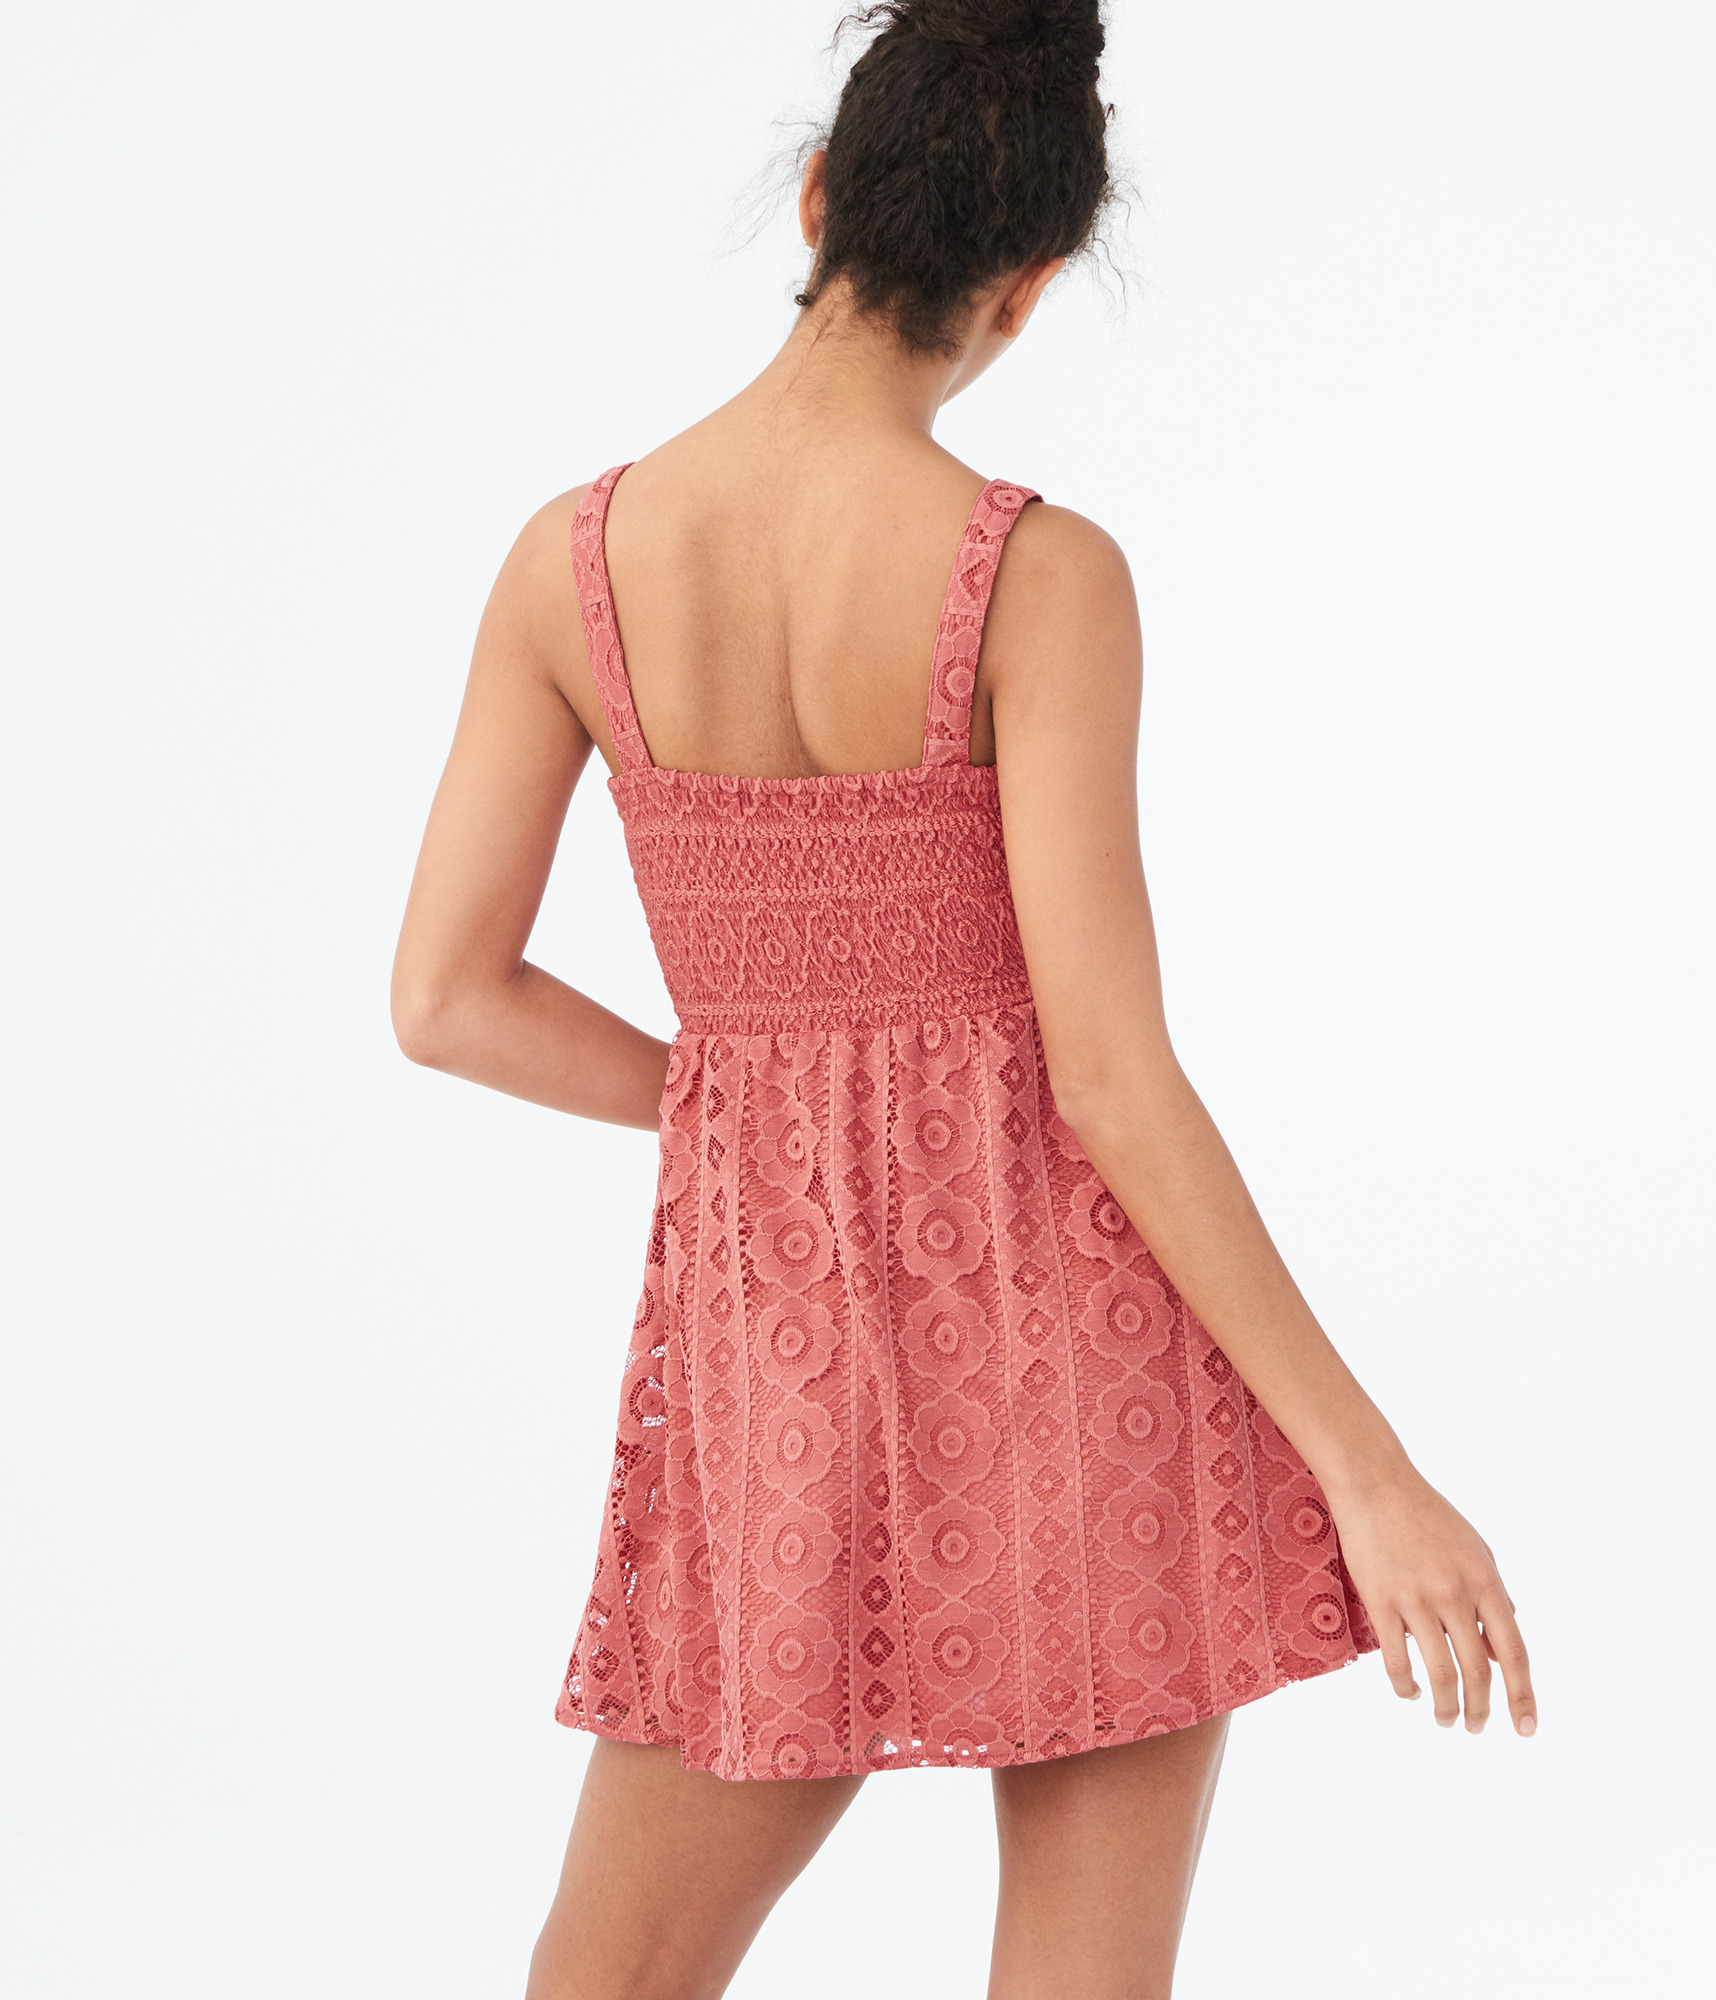 aeropostale-womens-solid-square-neck-lace-corset-fit-amp-flare-dress thumbnail 7